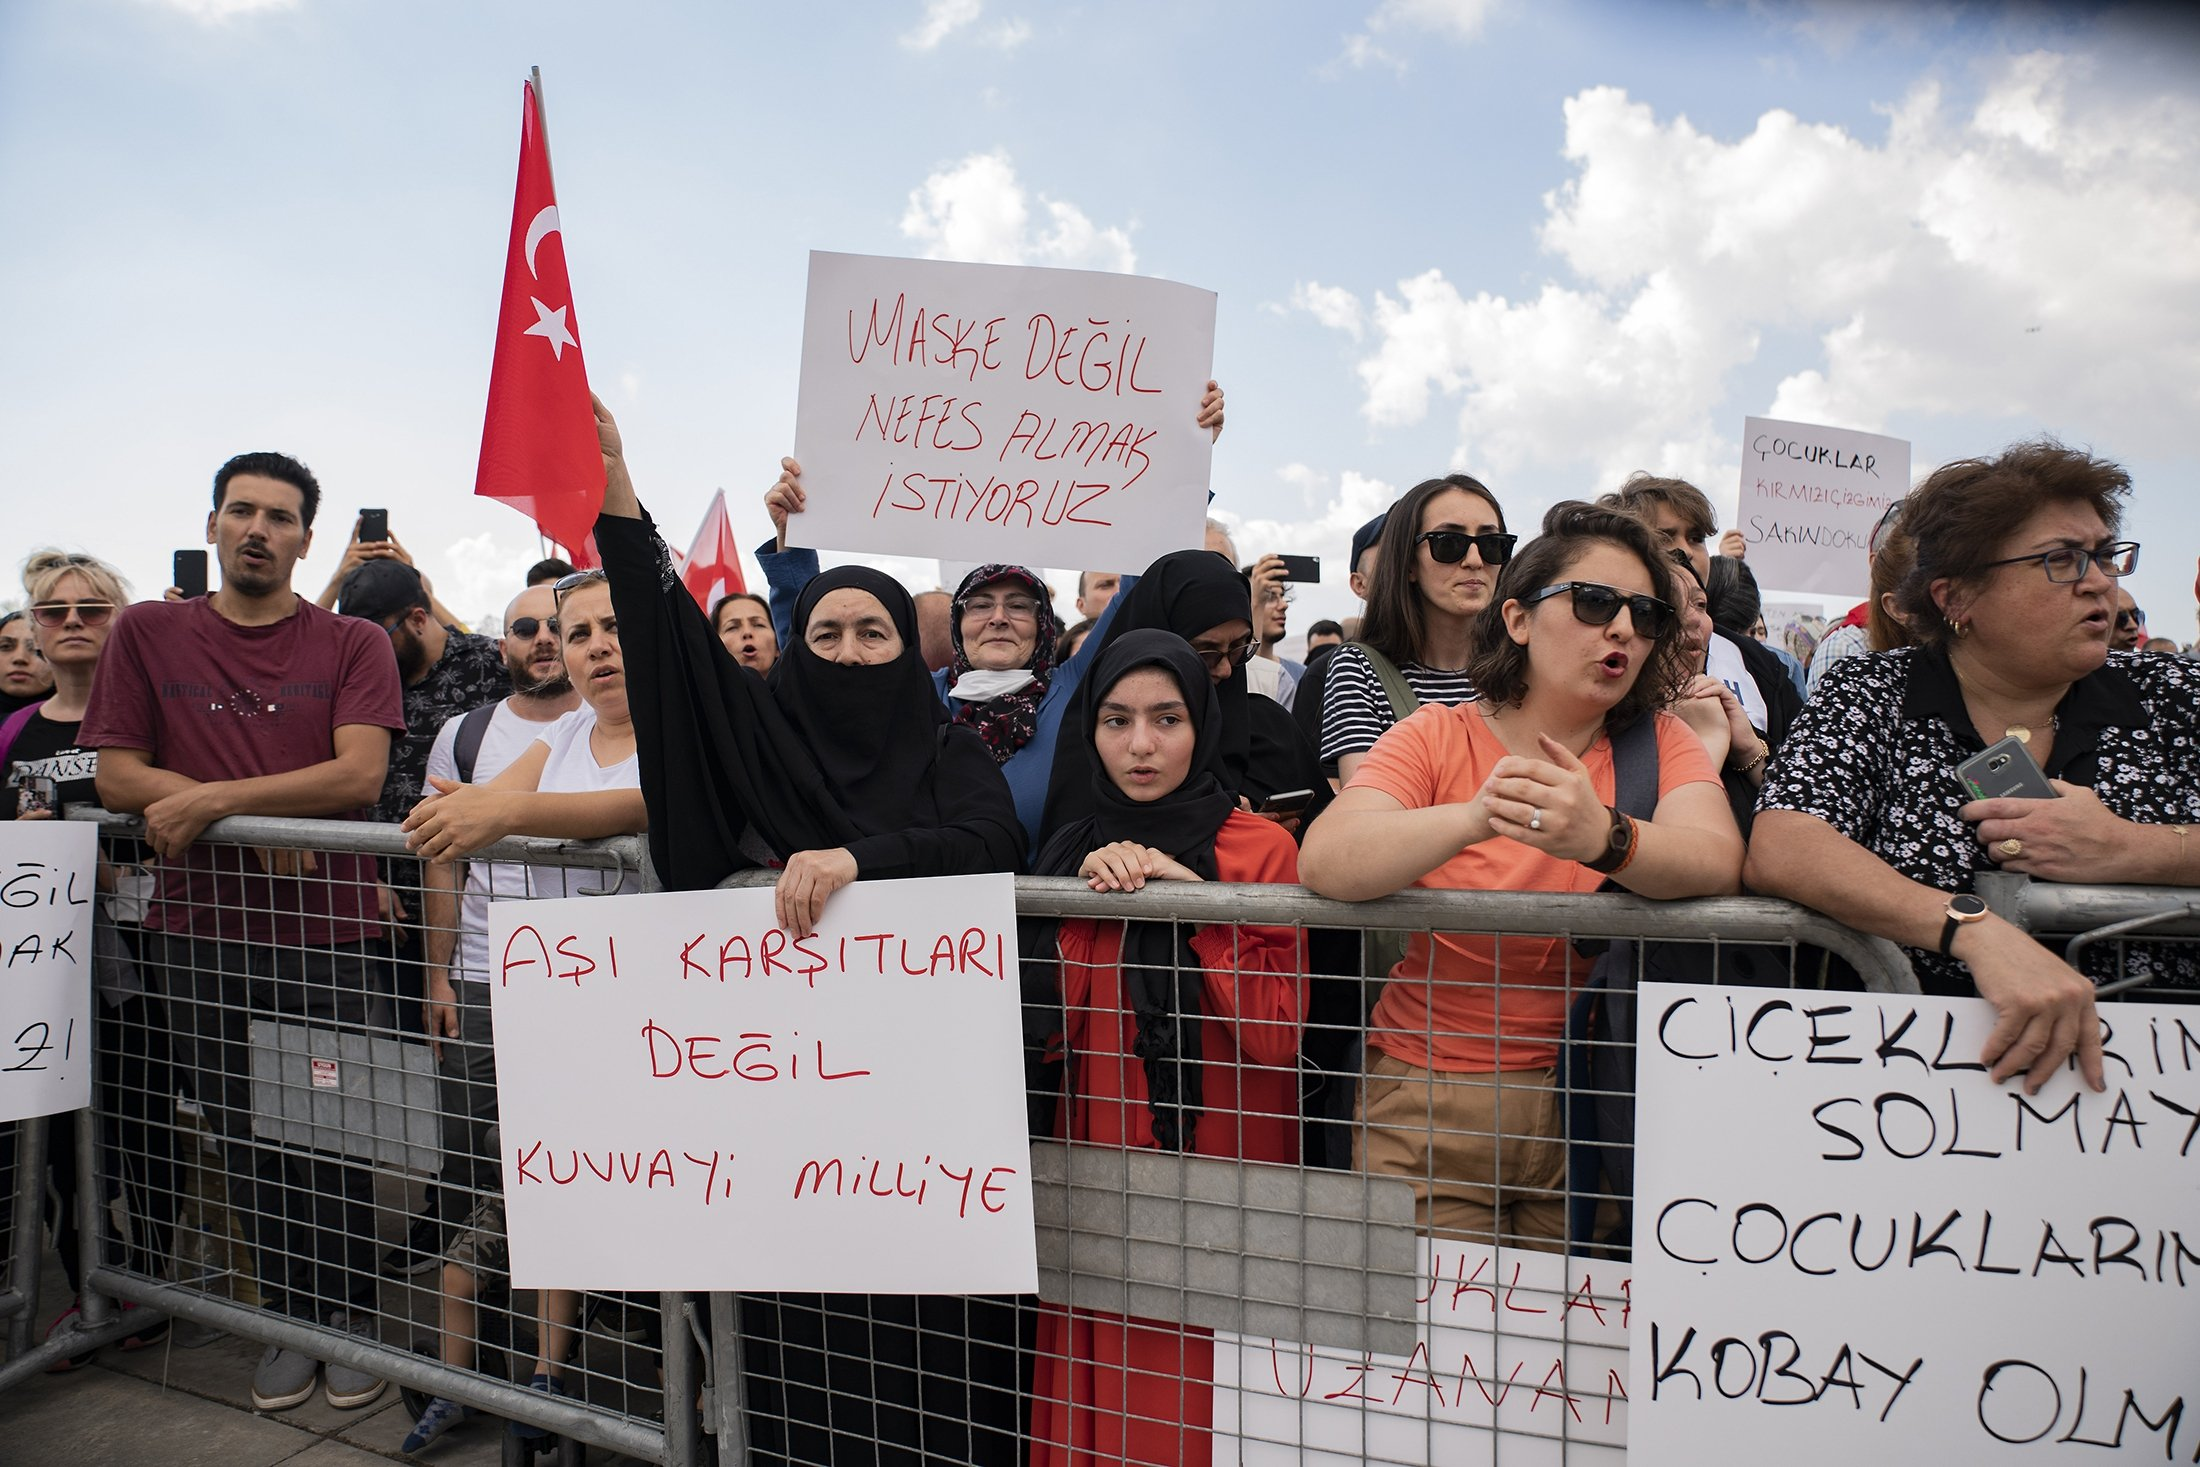 More than a thousand people demonstrate against COVID-19 vaccinations, testing and mask mandates in Istanbul, Turkey, Sept. 11, 2021. (Getty Images Photo)